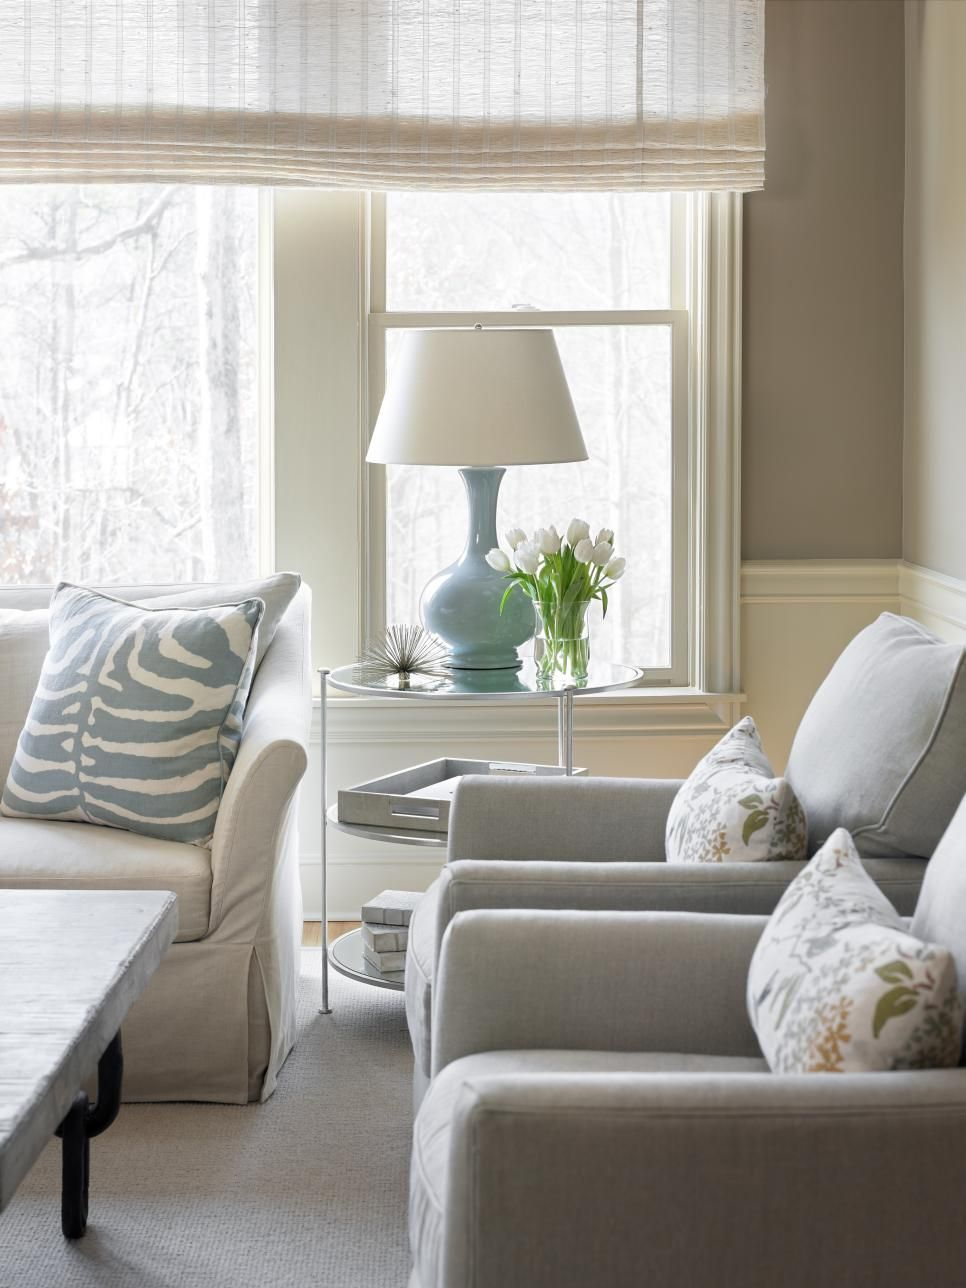 Best Pale Blue Accents Add Soft Pretty Touches Of Color To 400 x 300